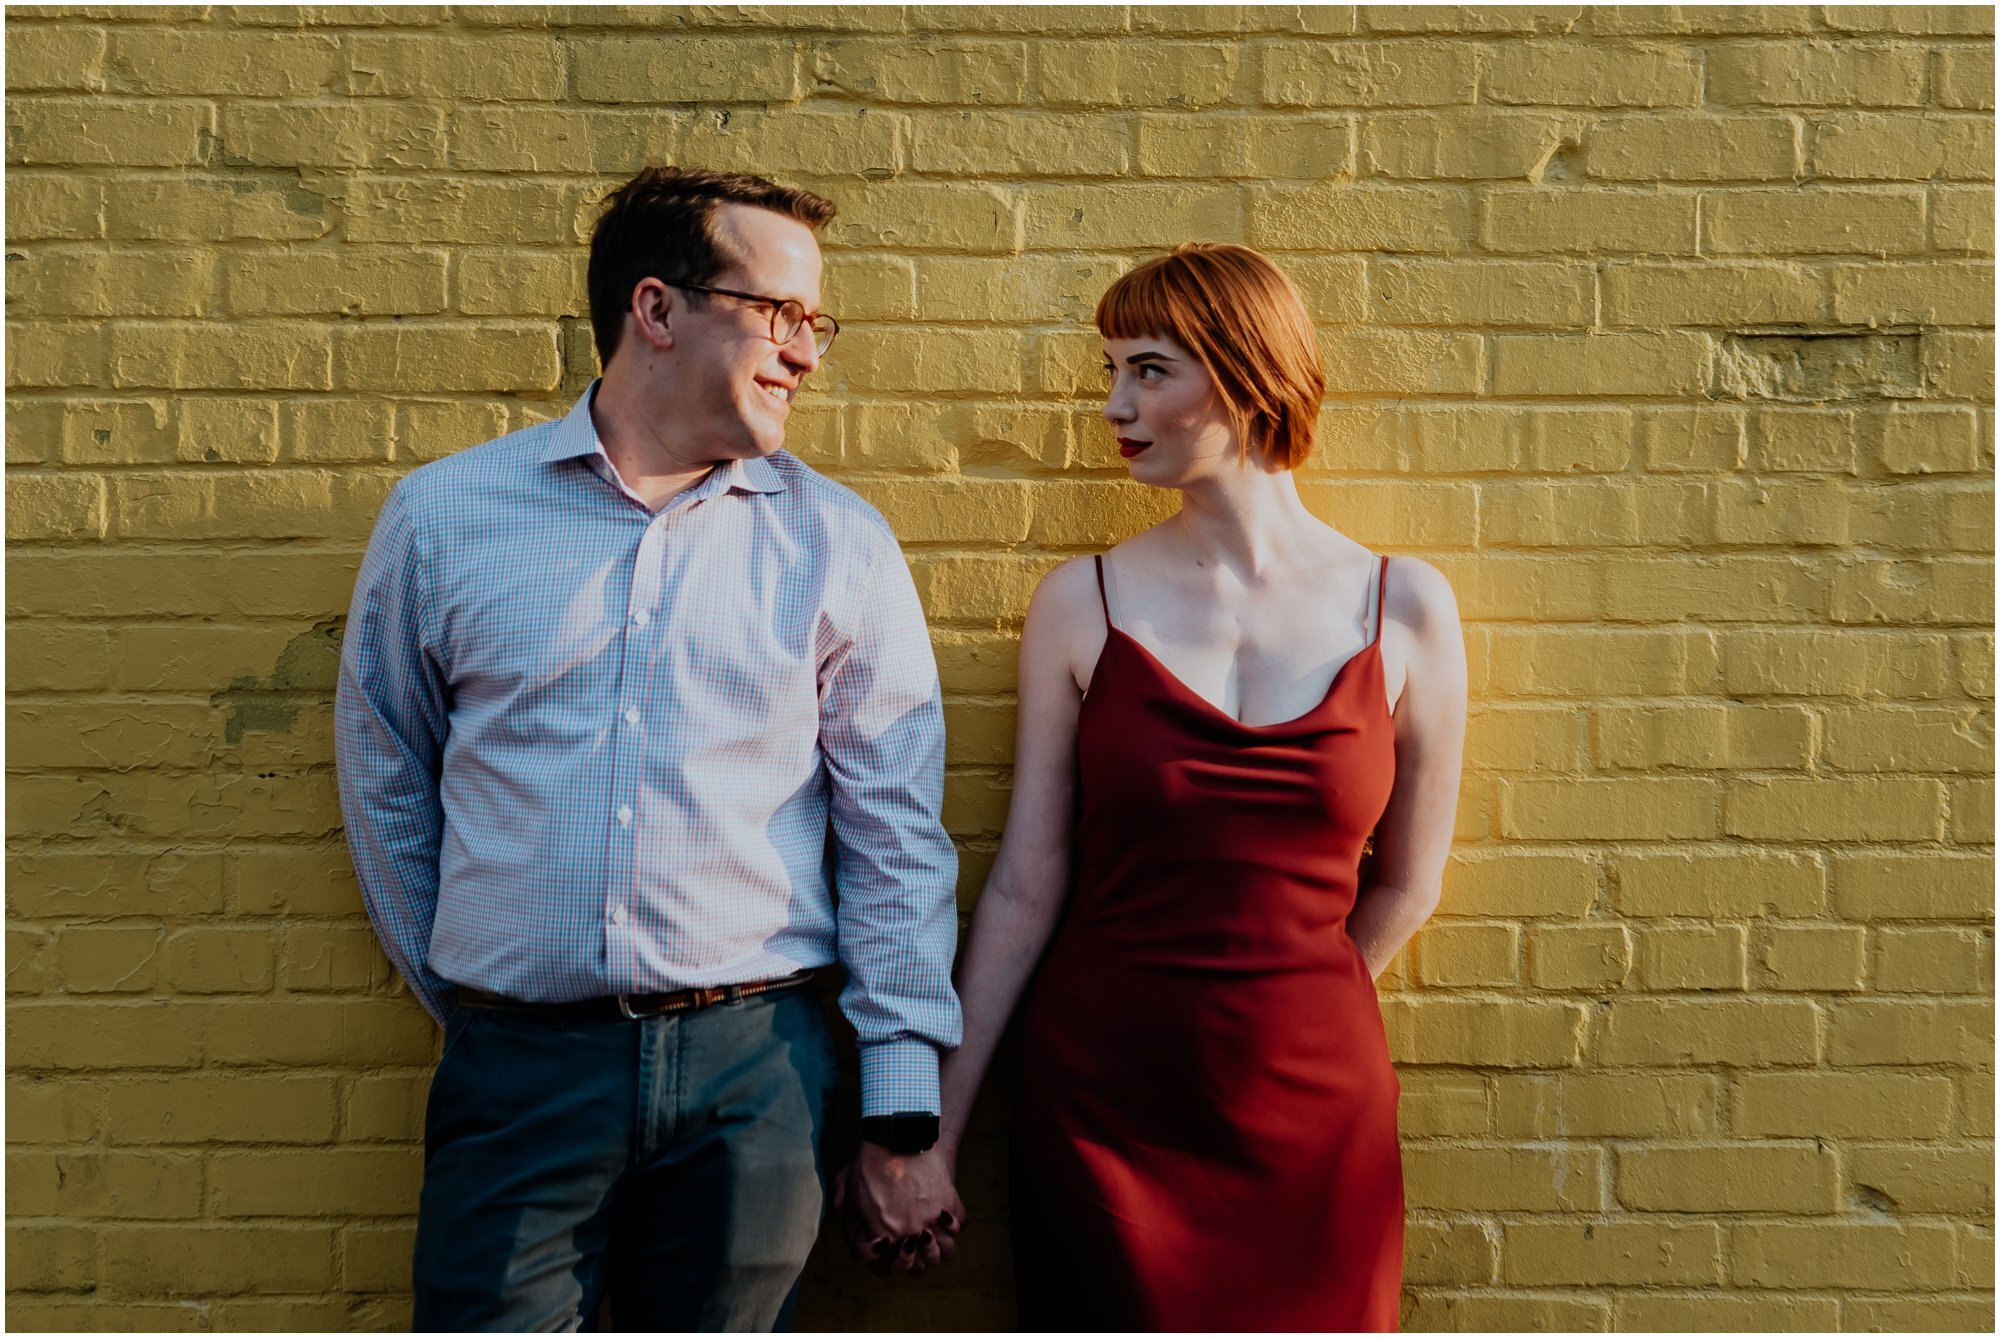 Taylor and Collin Old Town Alexandria Kaleidoscopic Rainbow Summer Engagement Session Flit Photography00103.jpg